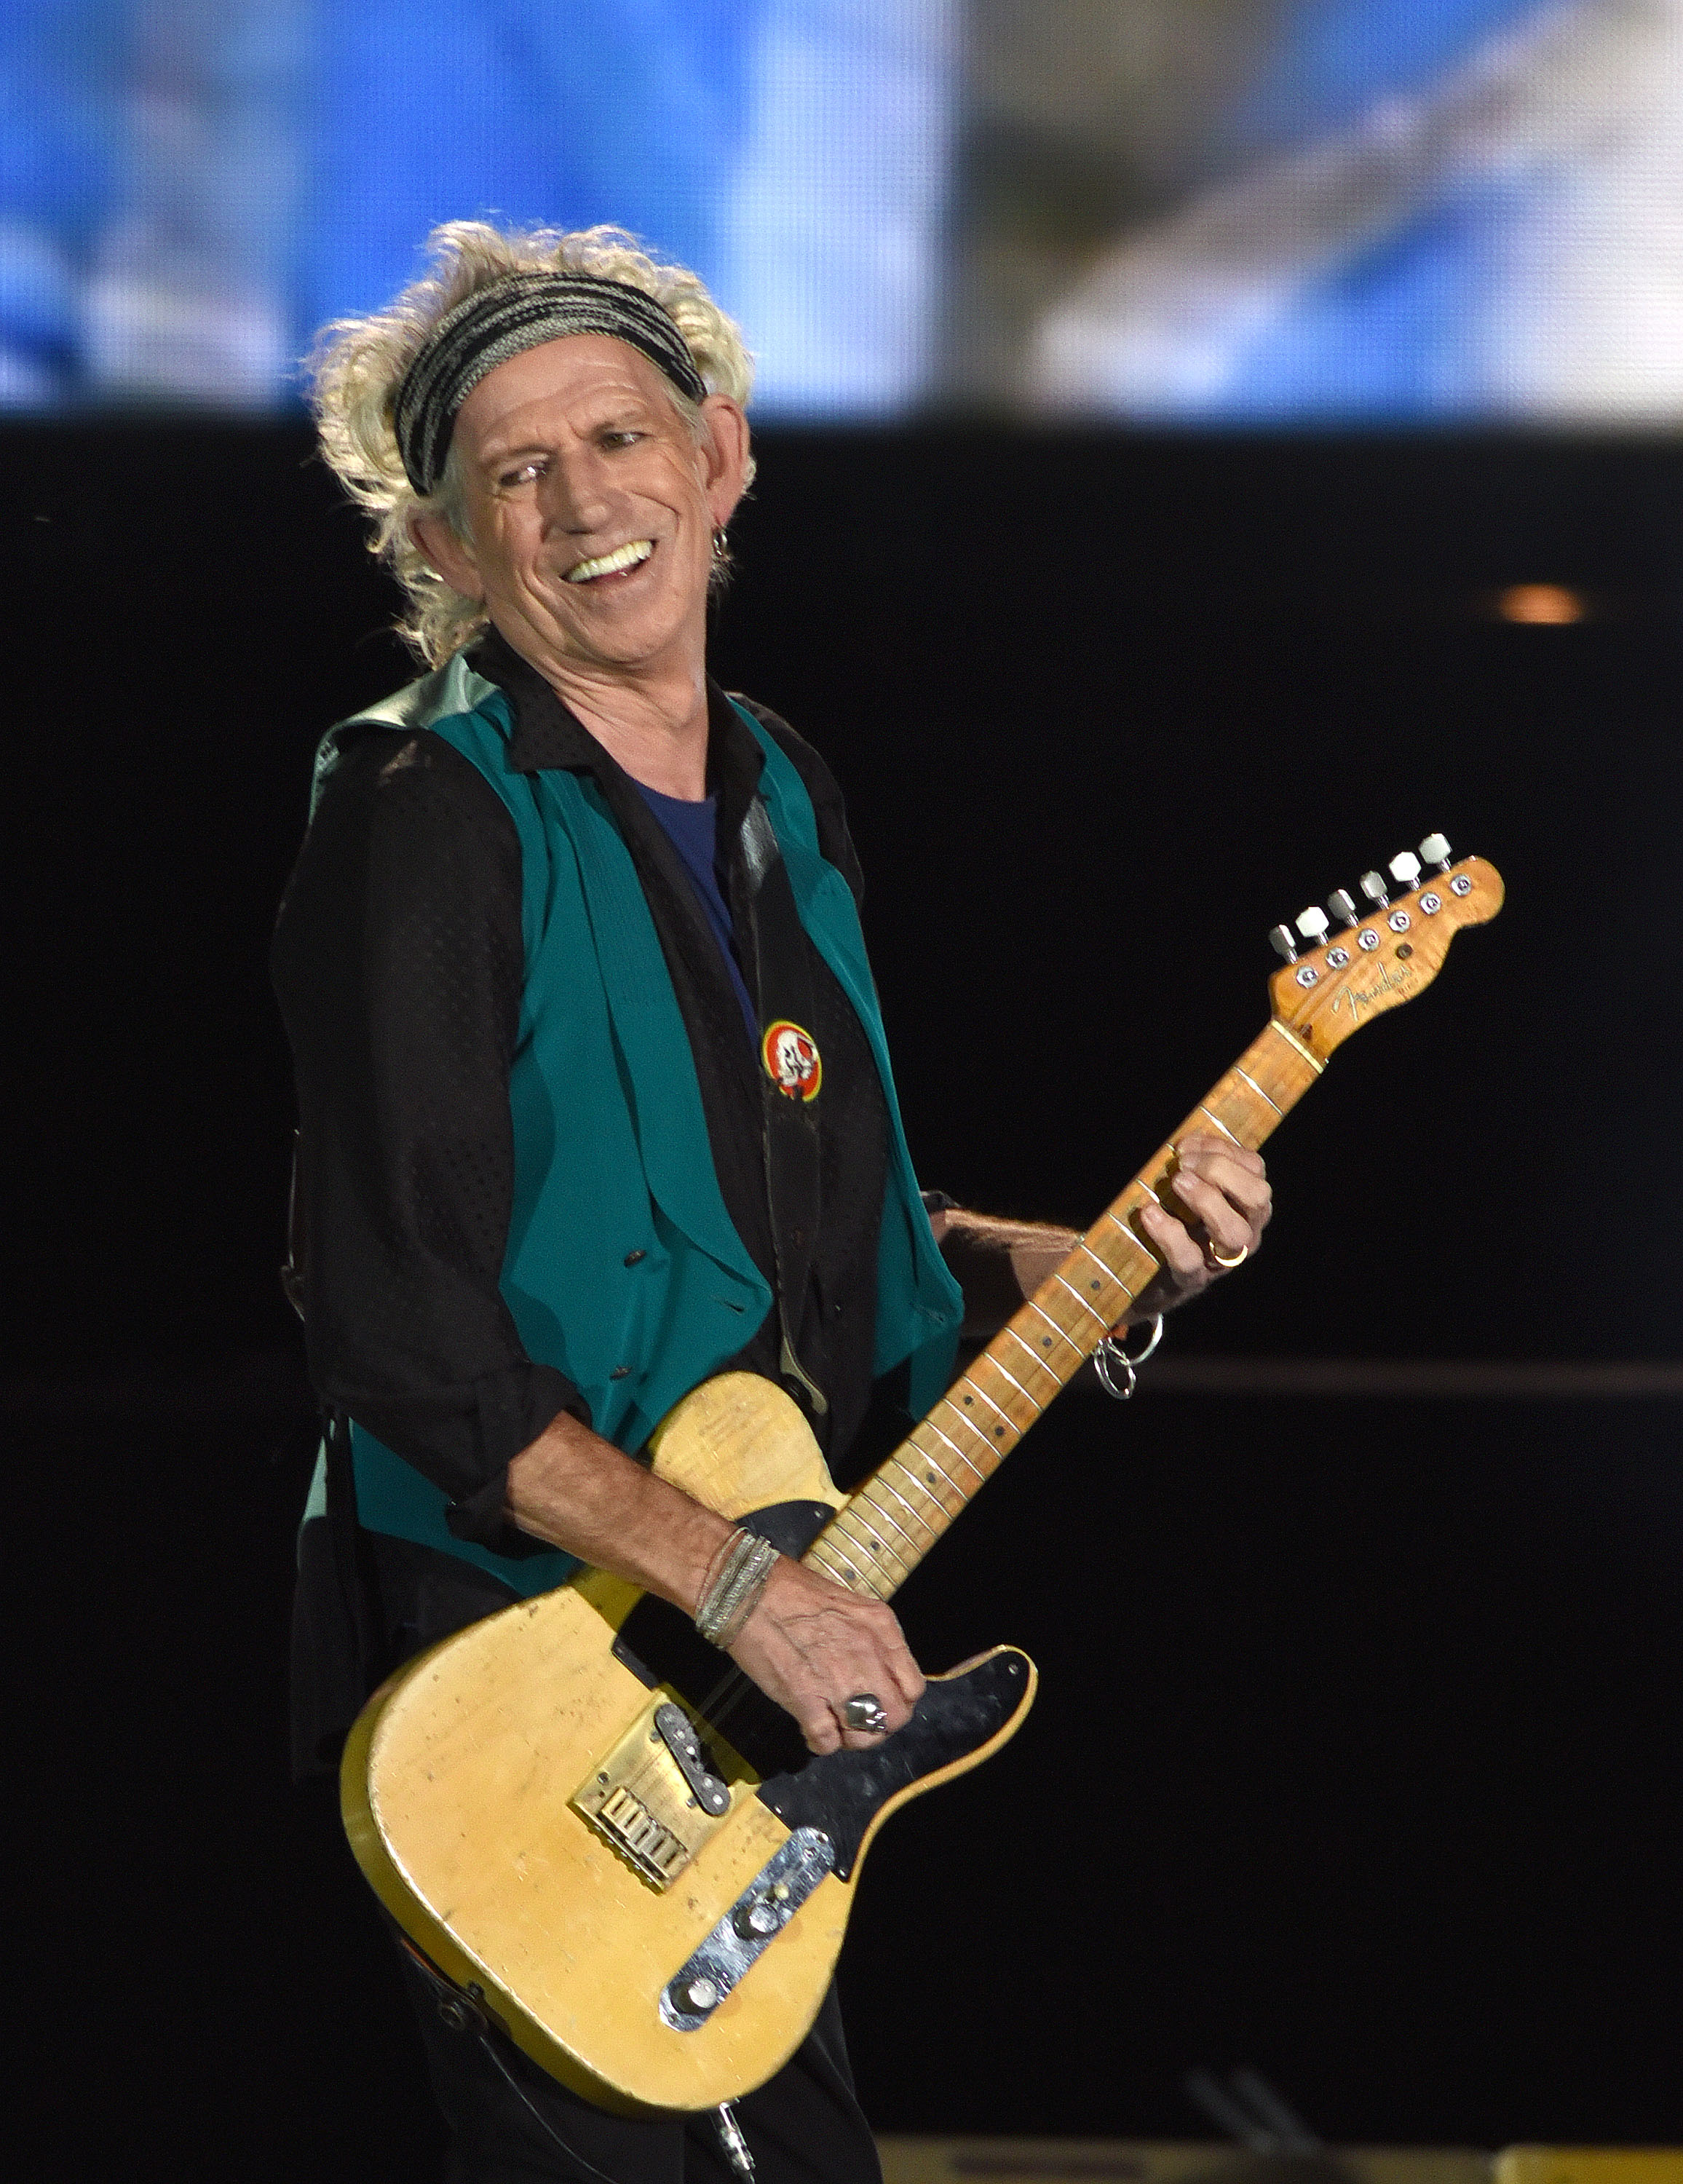 Keith Richards of The Rolling Stones performs during the Festival D'ete De Quebec on July 15, 2015 in Quebec City, Canada.